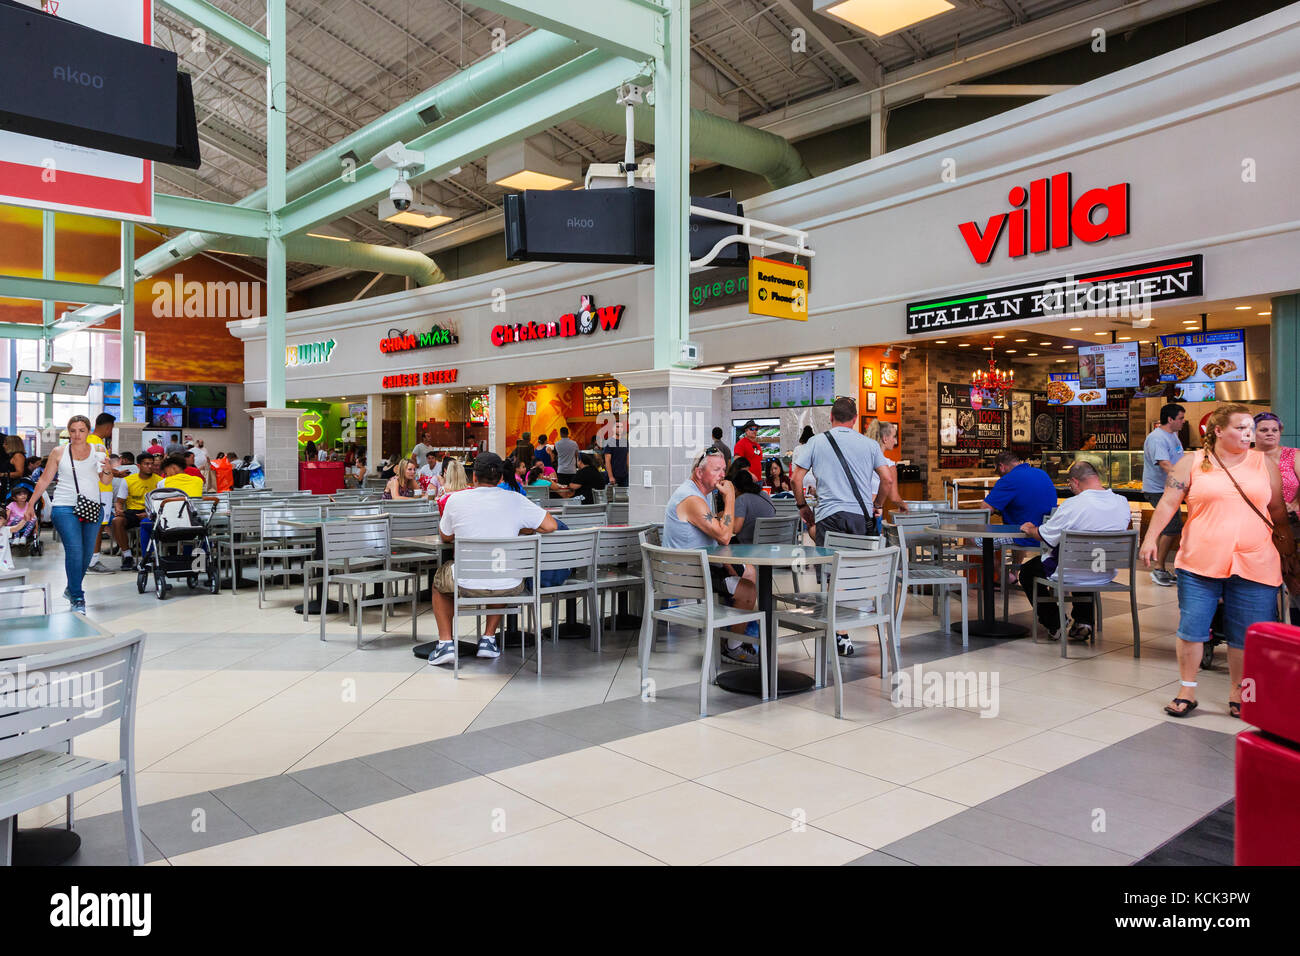 Restaurants And Cafes Inside Premium Outlets Shopping Mall